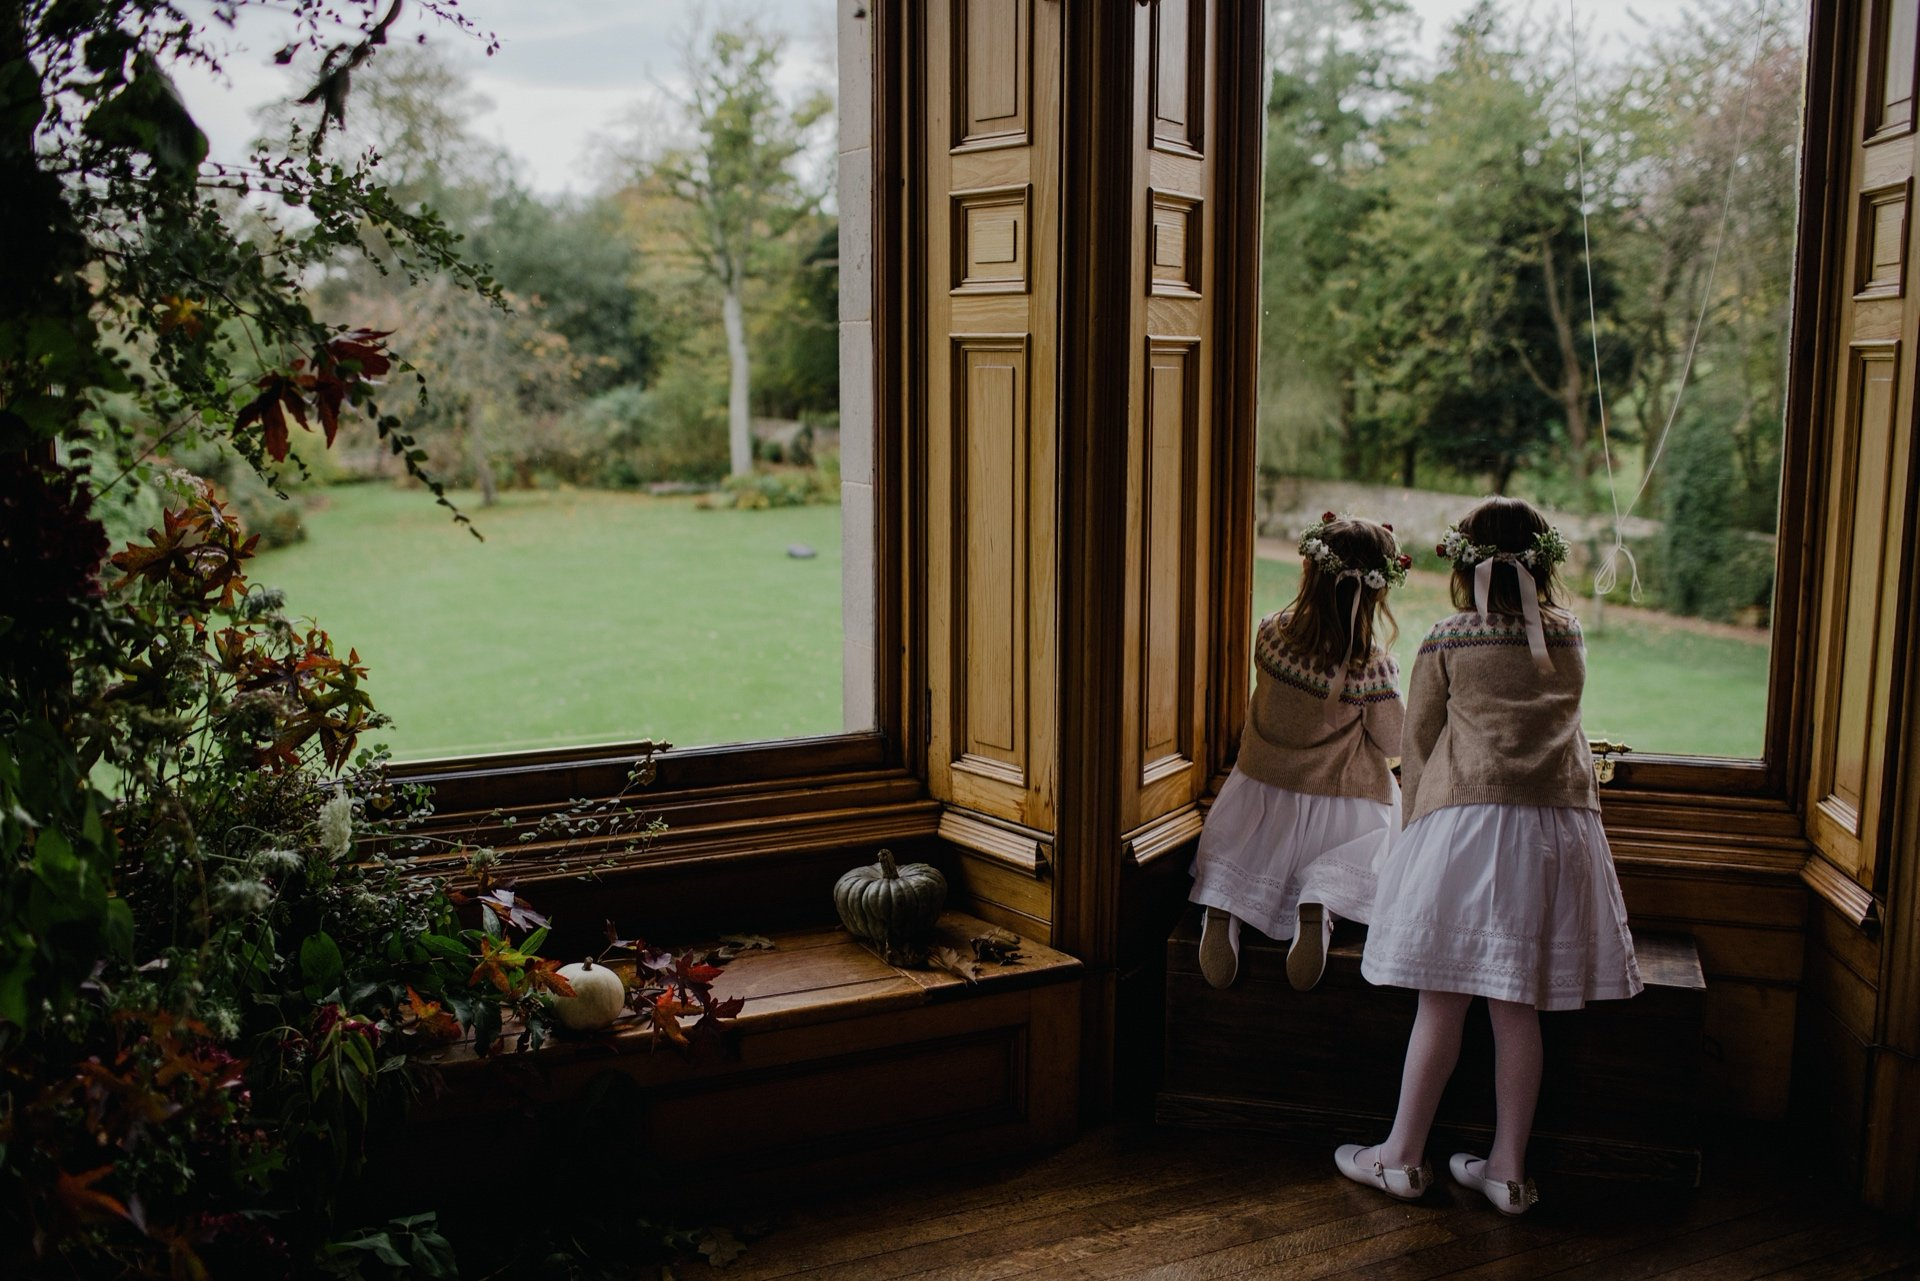 Flower girls looking out the window at cambo house